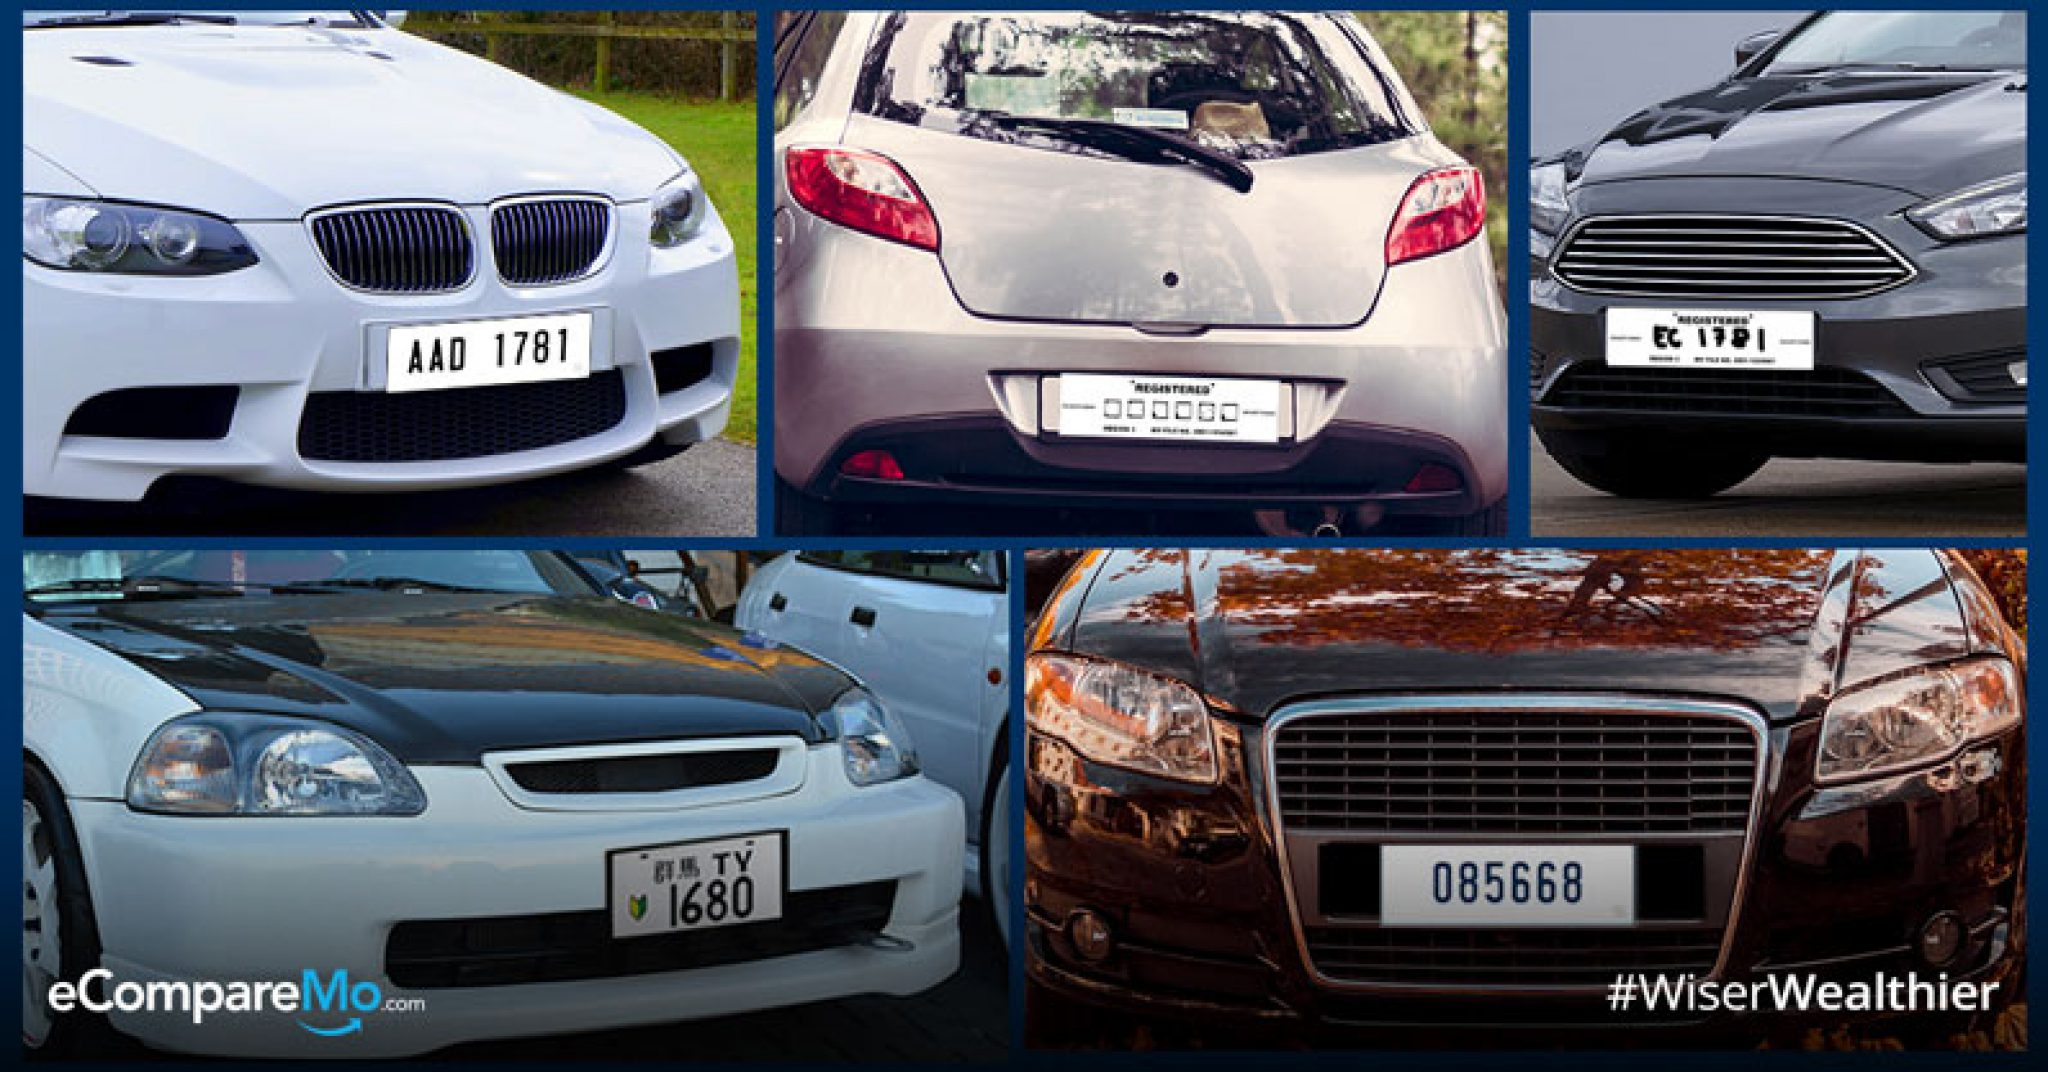 These 10 Types Of 'Temporary' License Plates Can Get You In Trouble